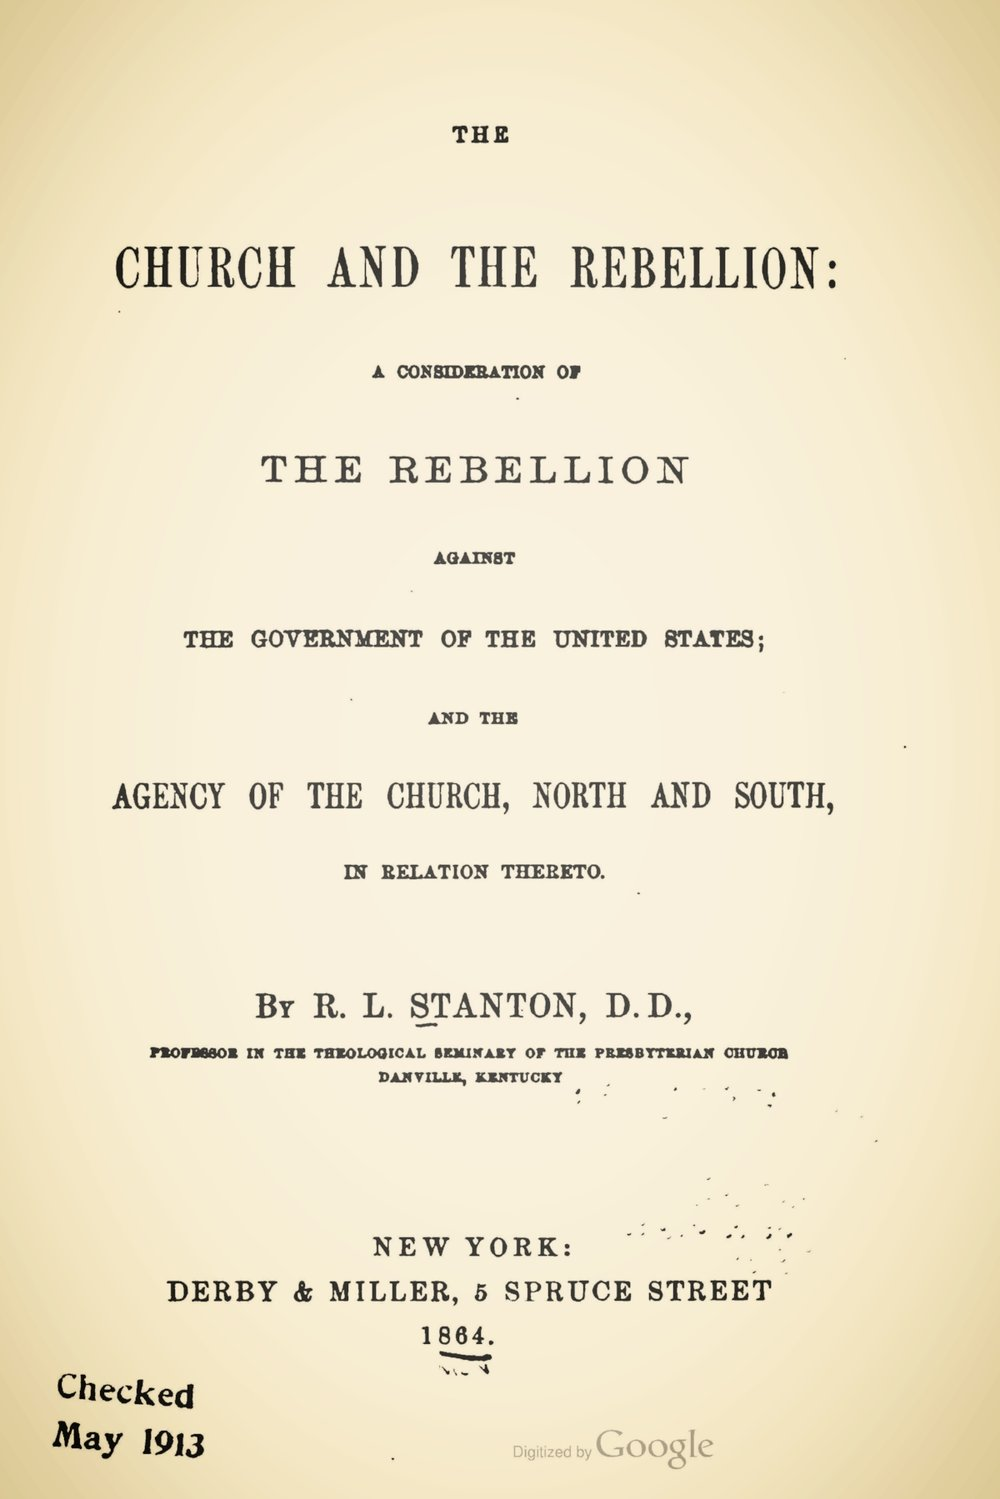 Stanton, Robert Lodowick, The Church and the Rebellion Title Page.jpg